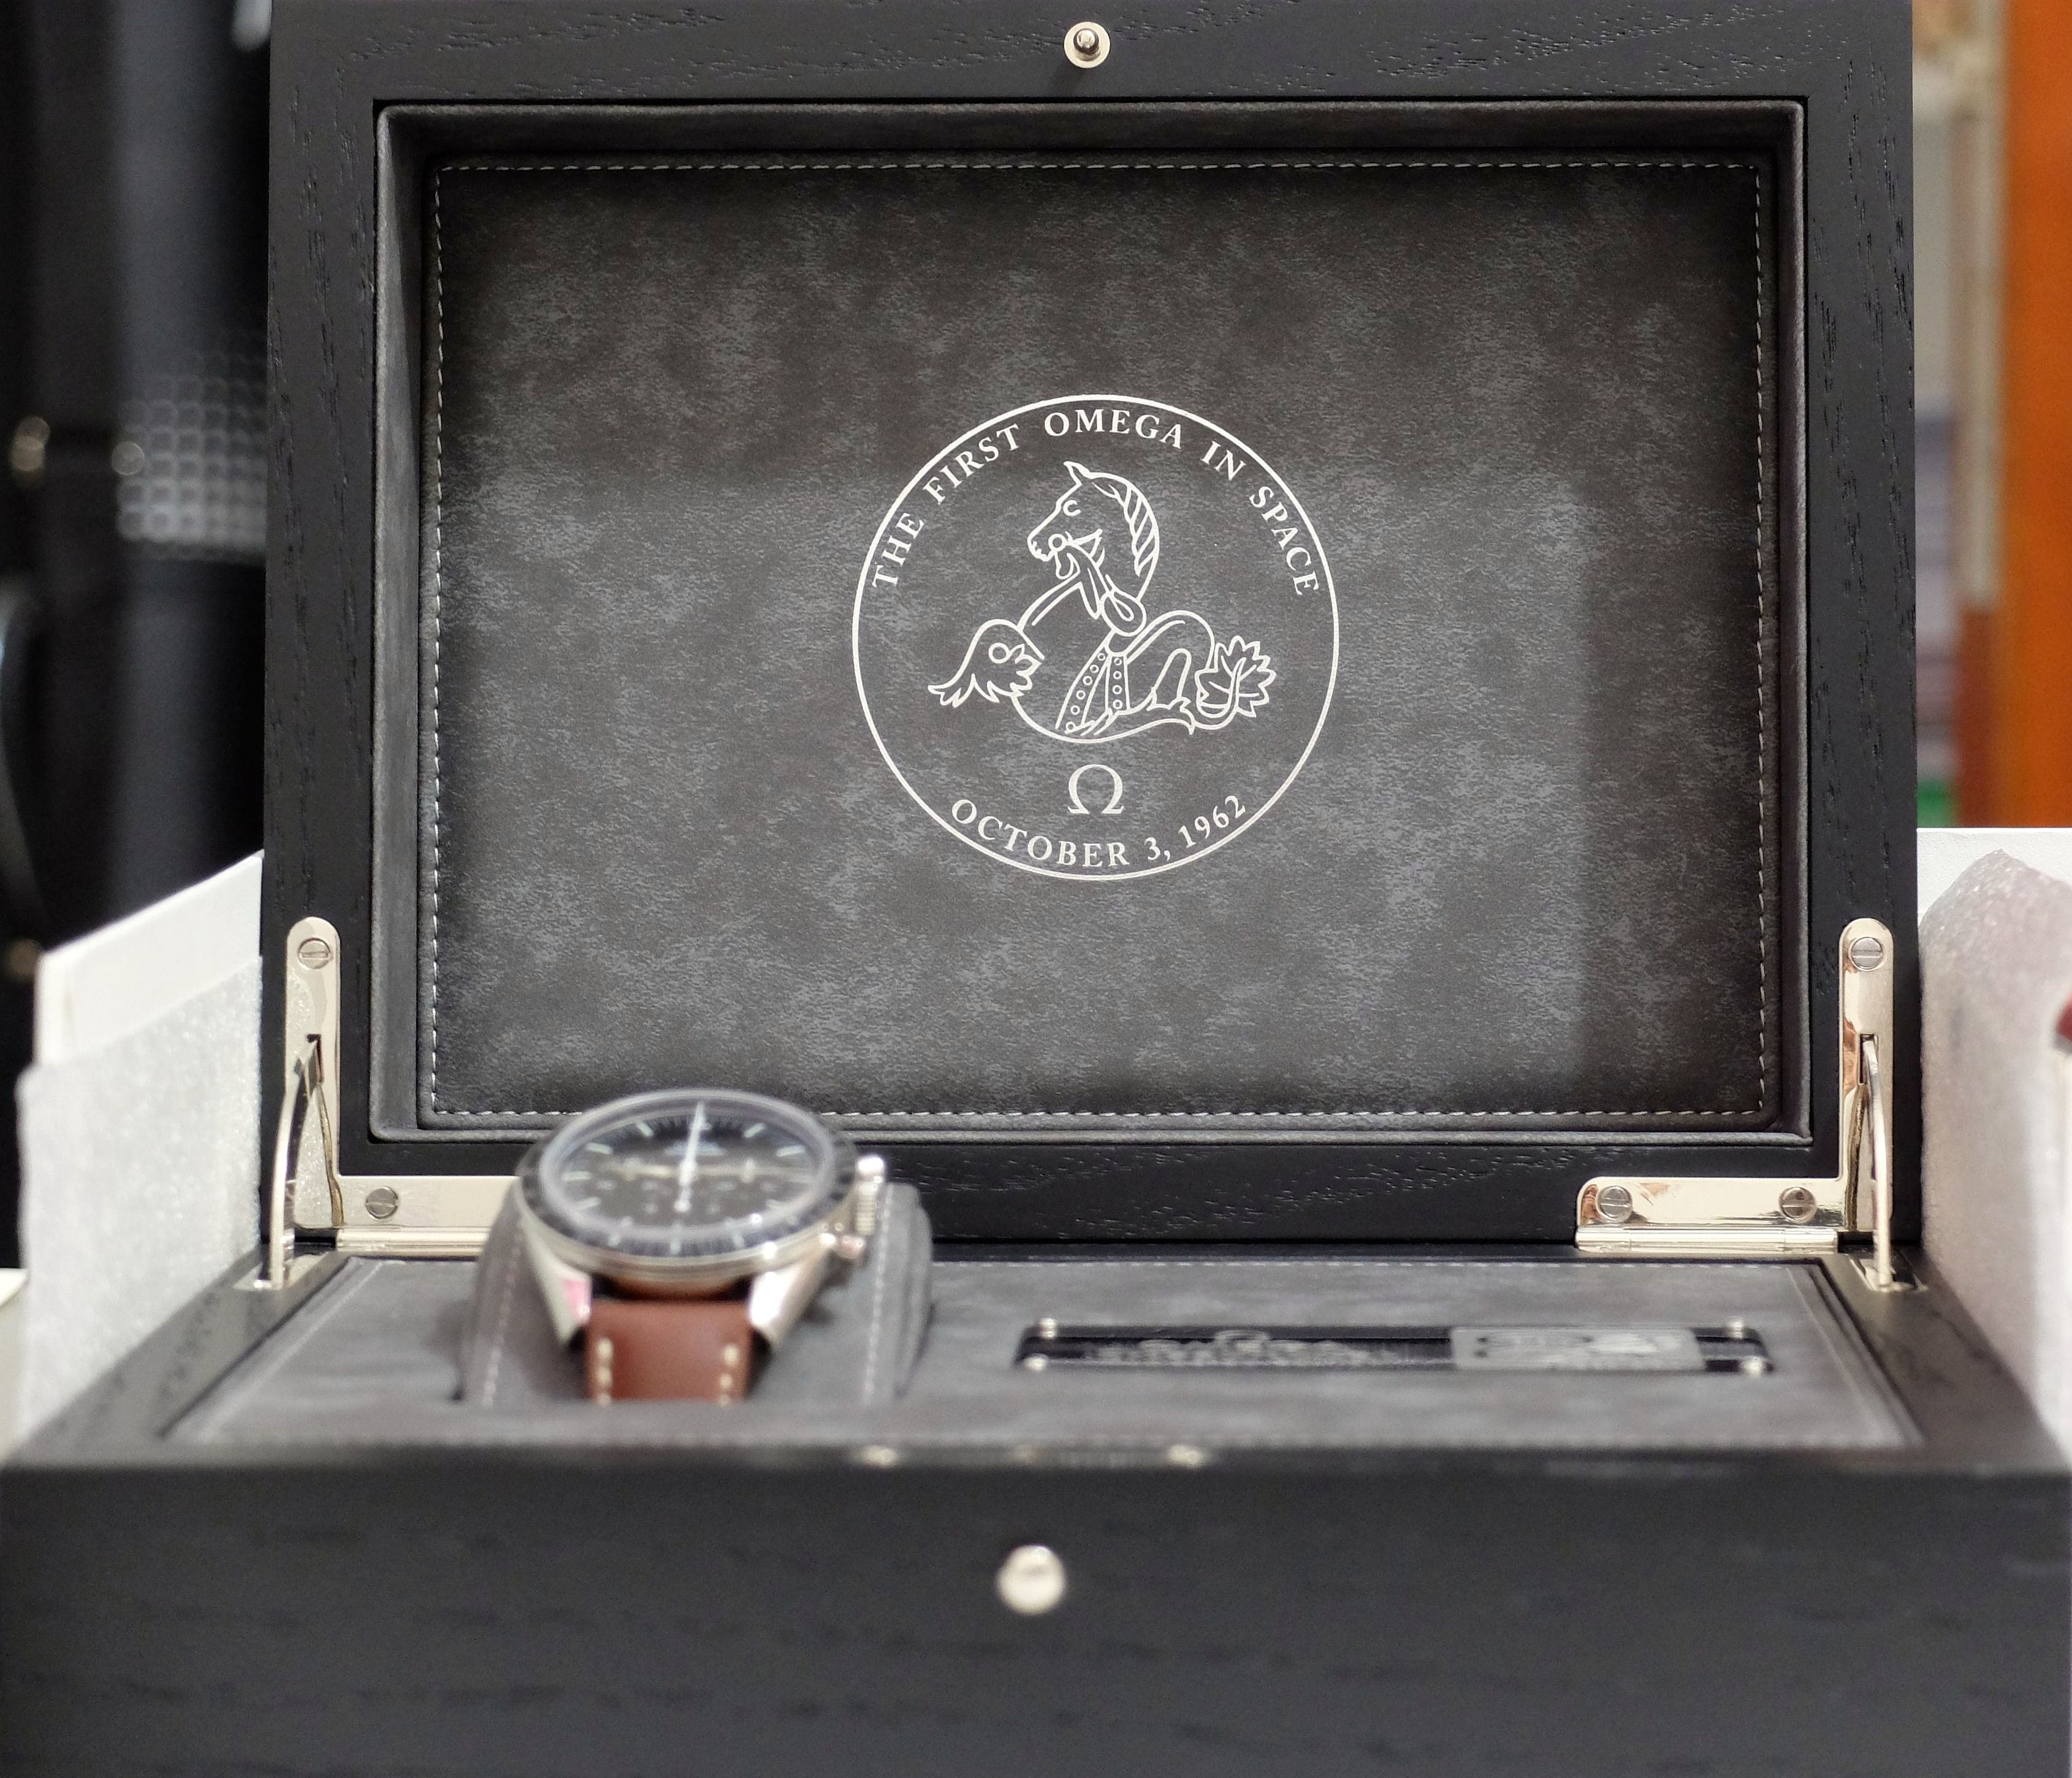 Omega Speedmaster First Omega In Space Review Journeyman